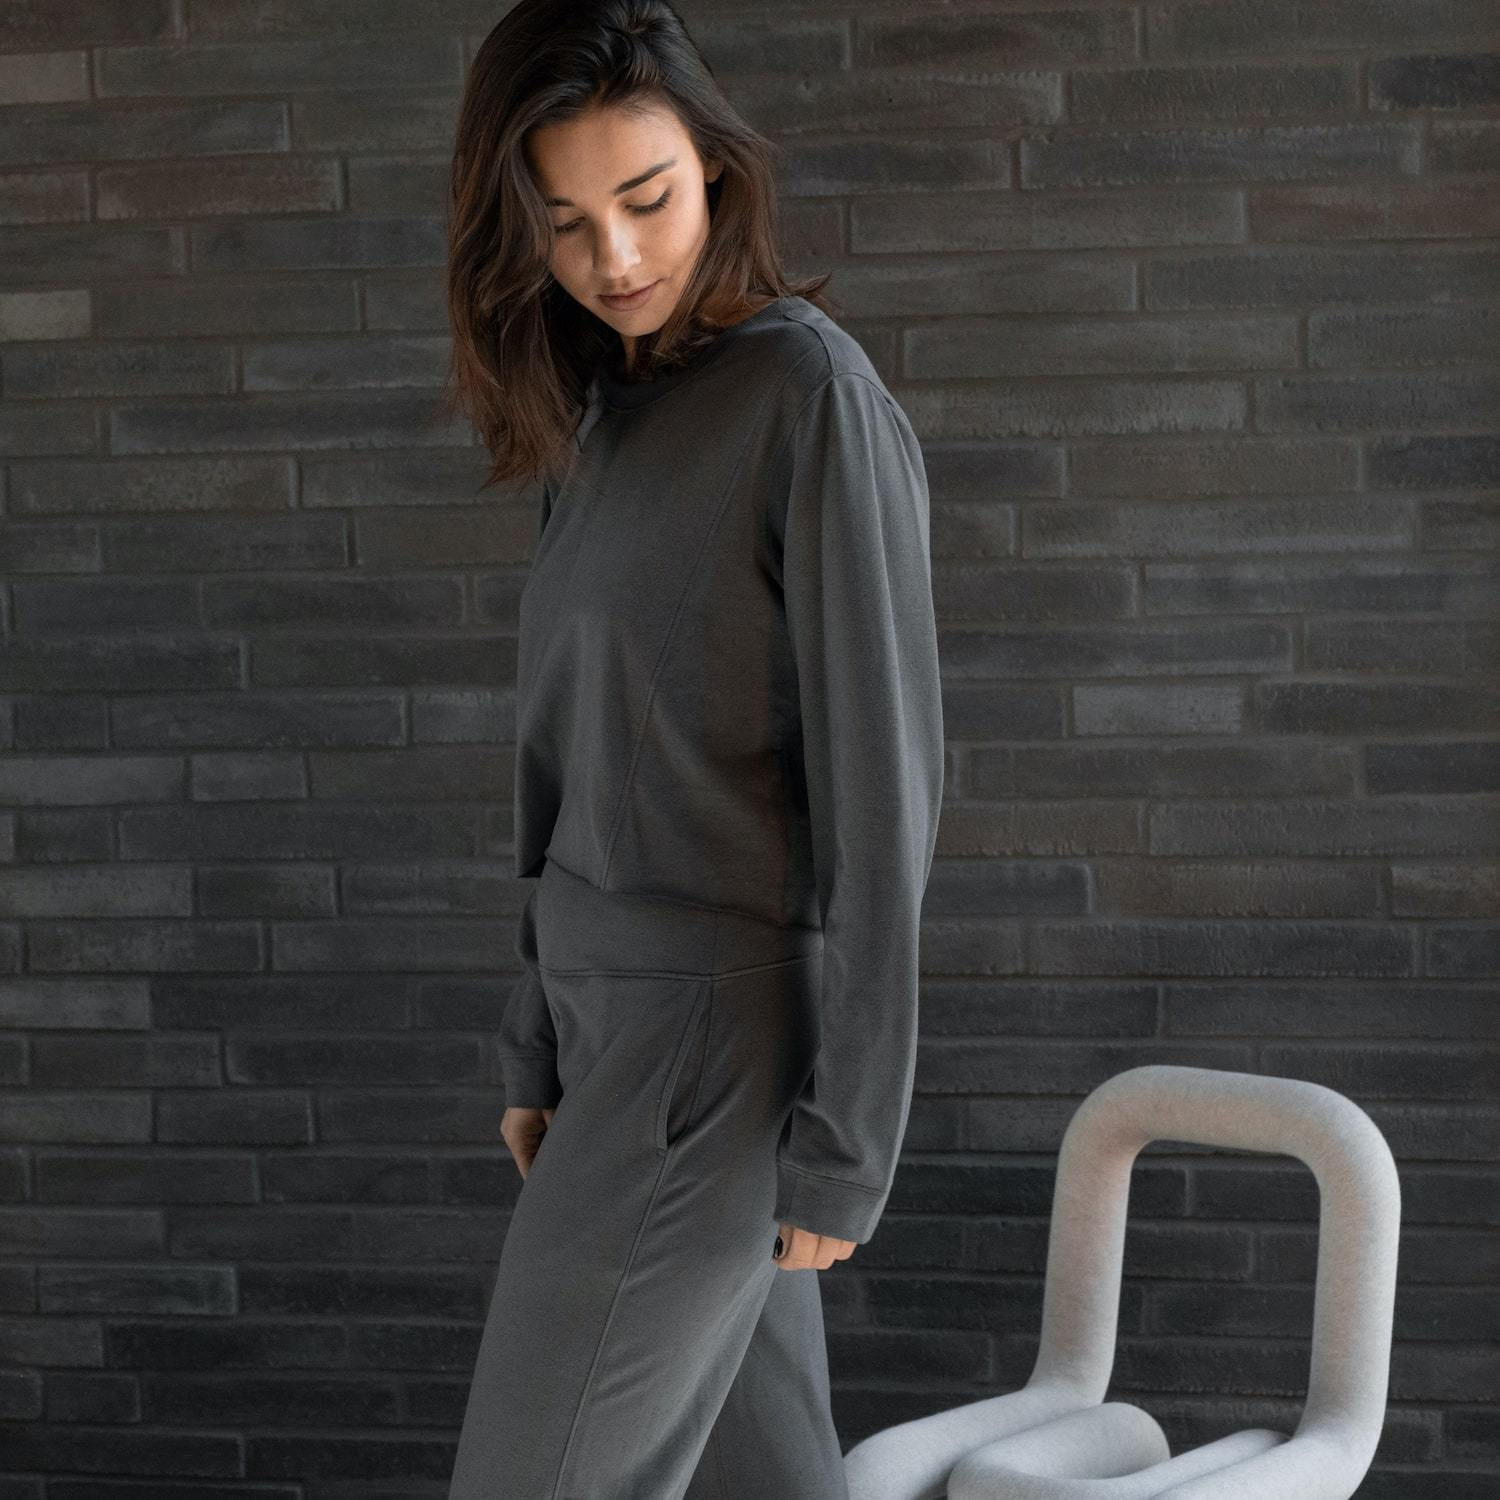 Lunya Sleepwear Cozy Pima Alpaca Fleece Crop Sweatshirt - #Eclipse